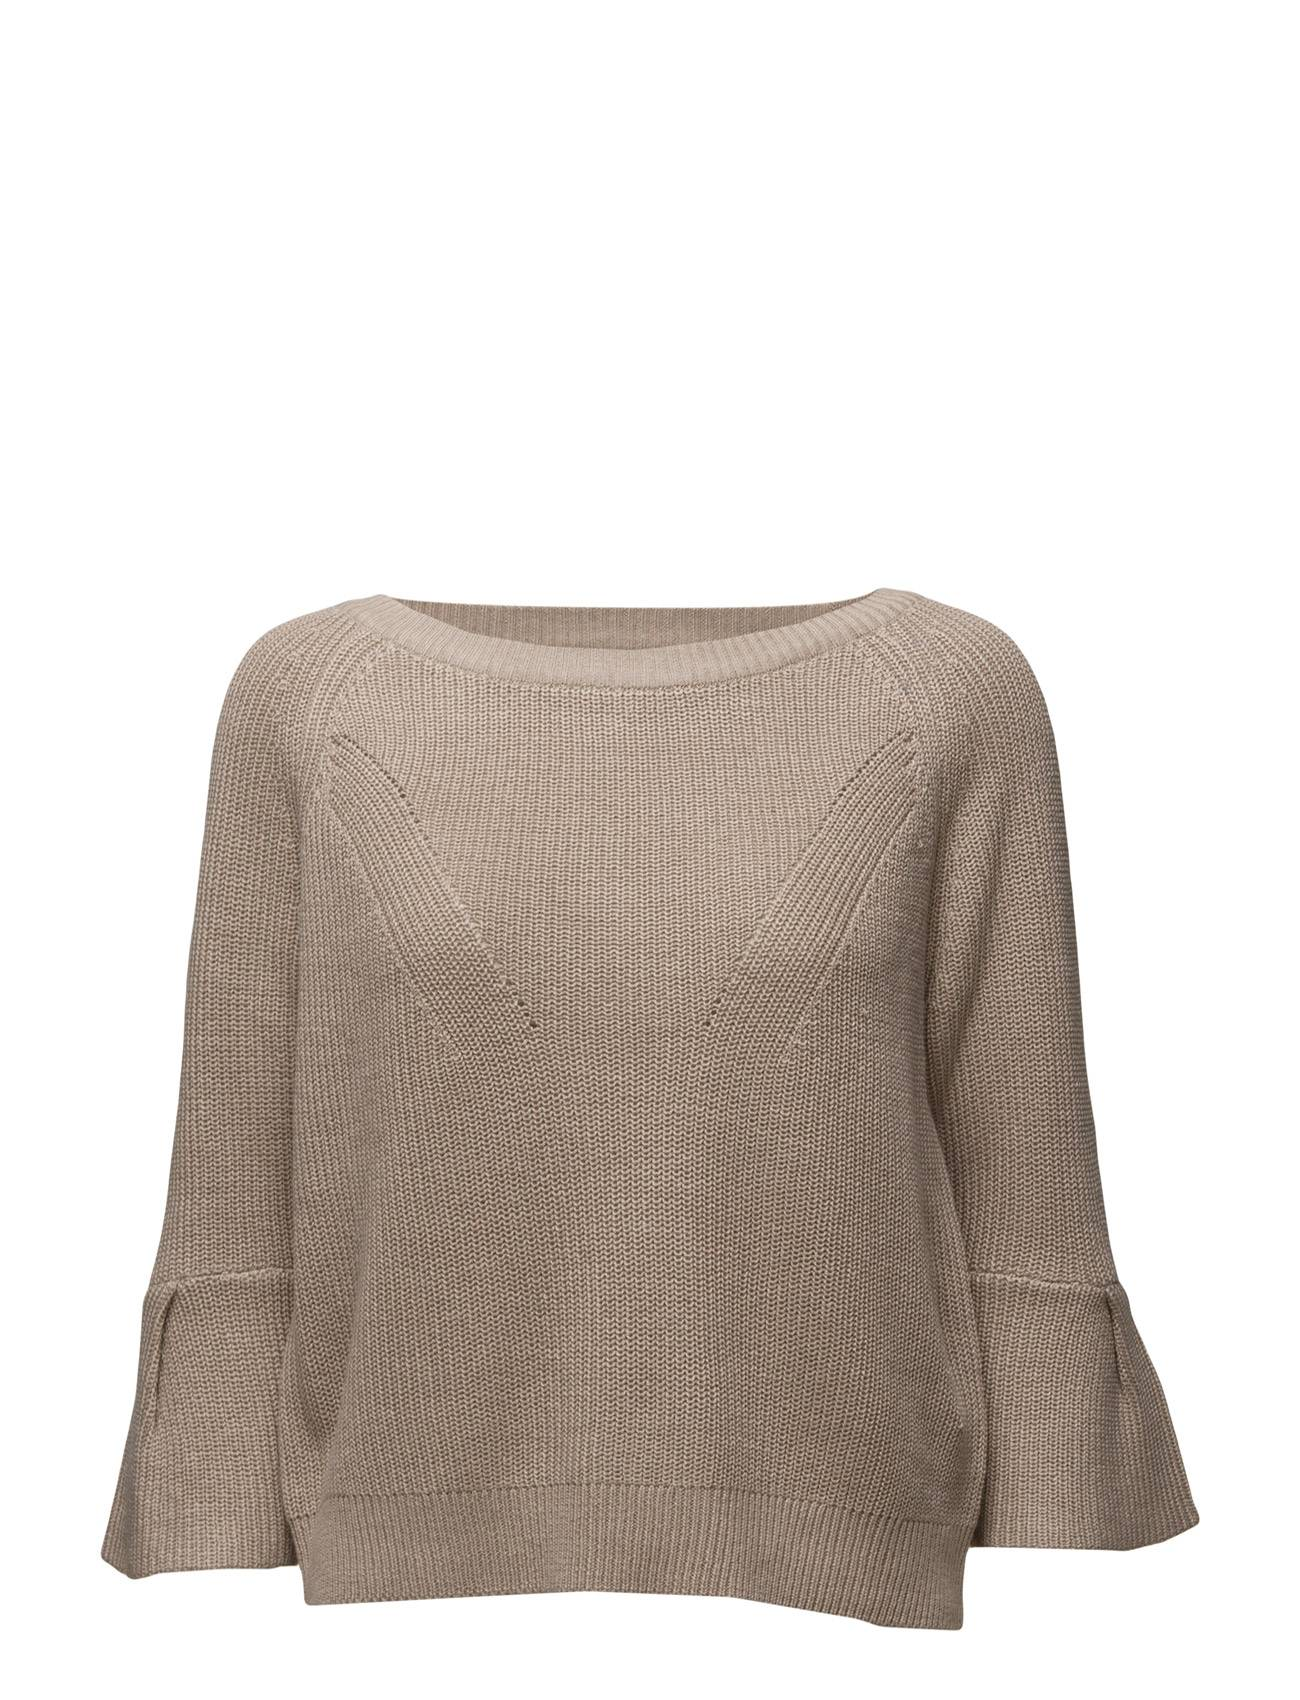 Ilse Jacobsen Knit Sweater